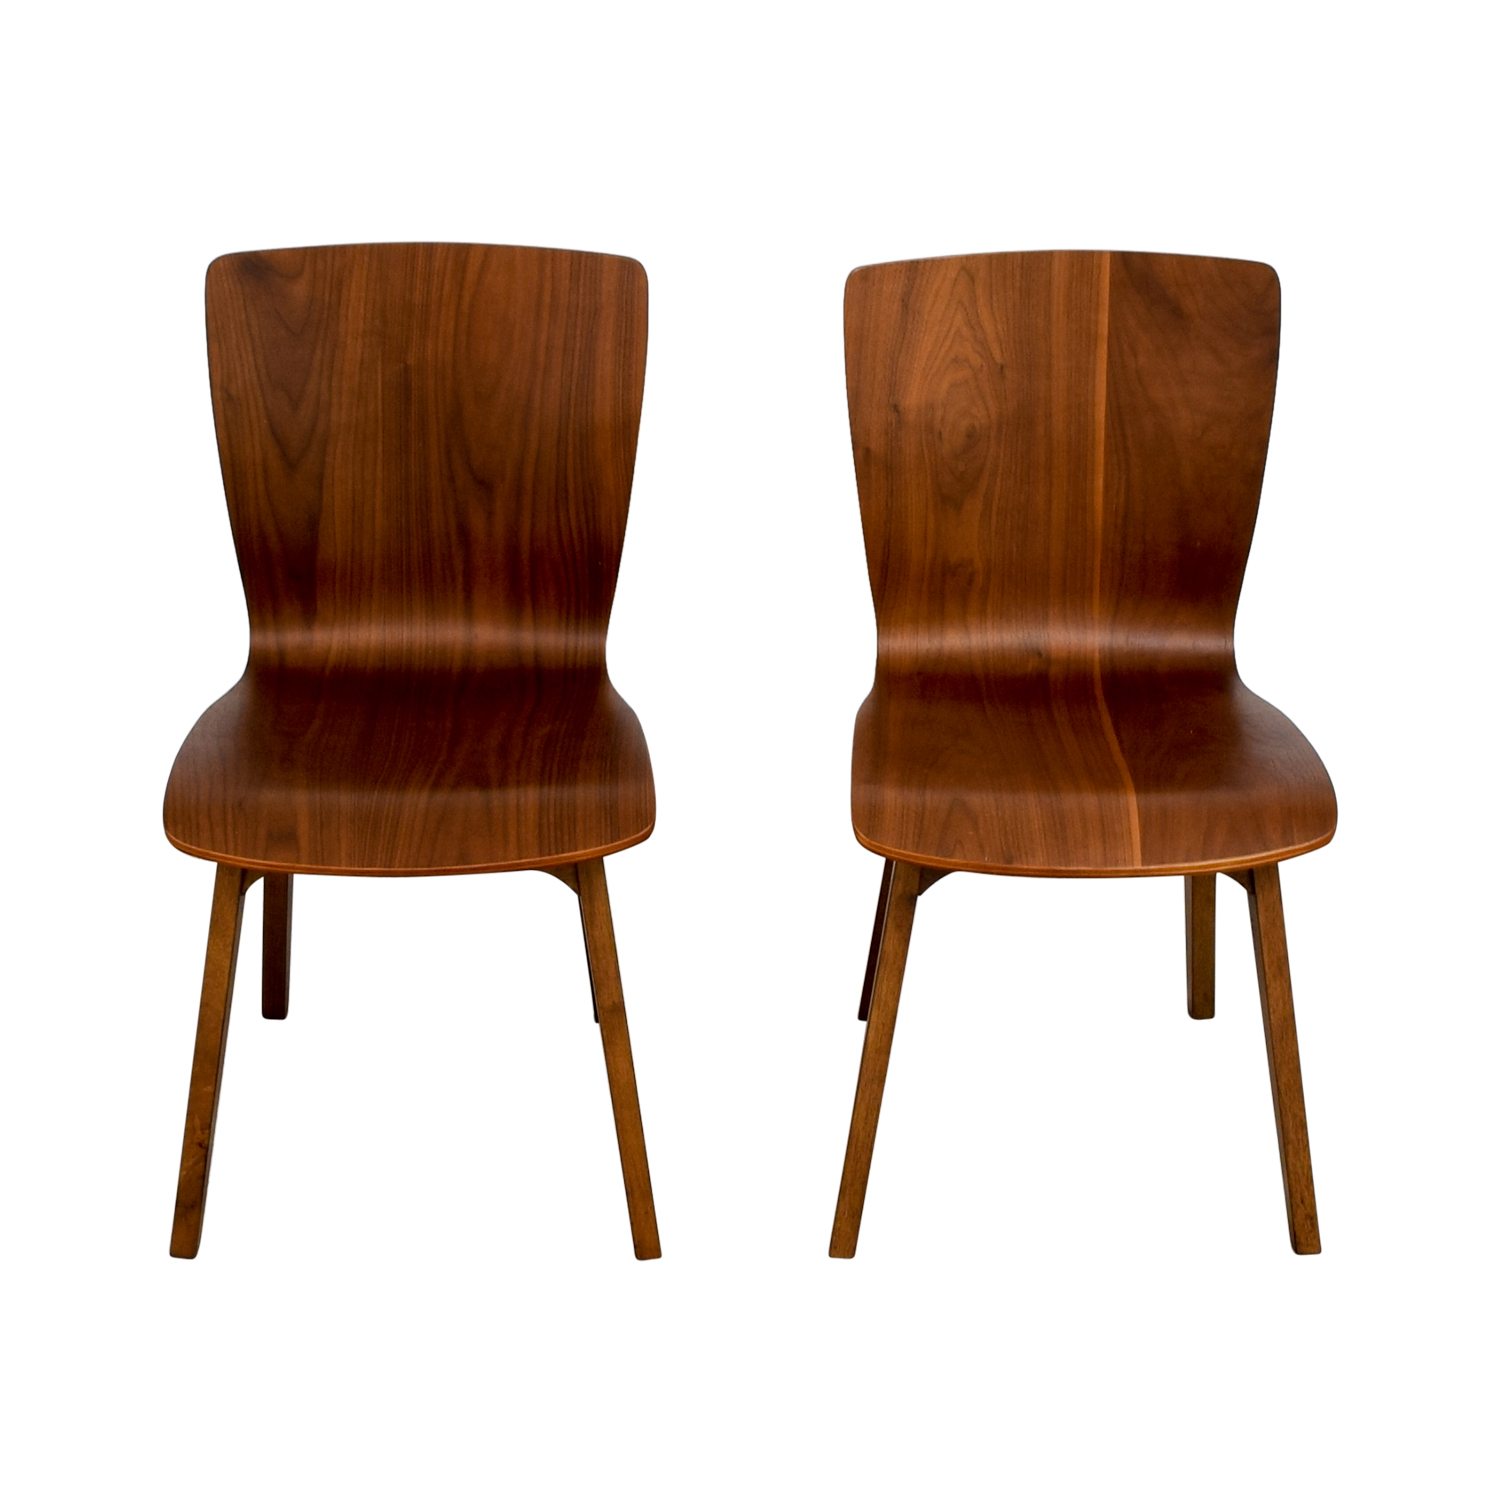 buy West Elm Crest Brentwood Chairs West Elm Chairs